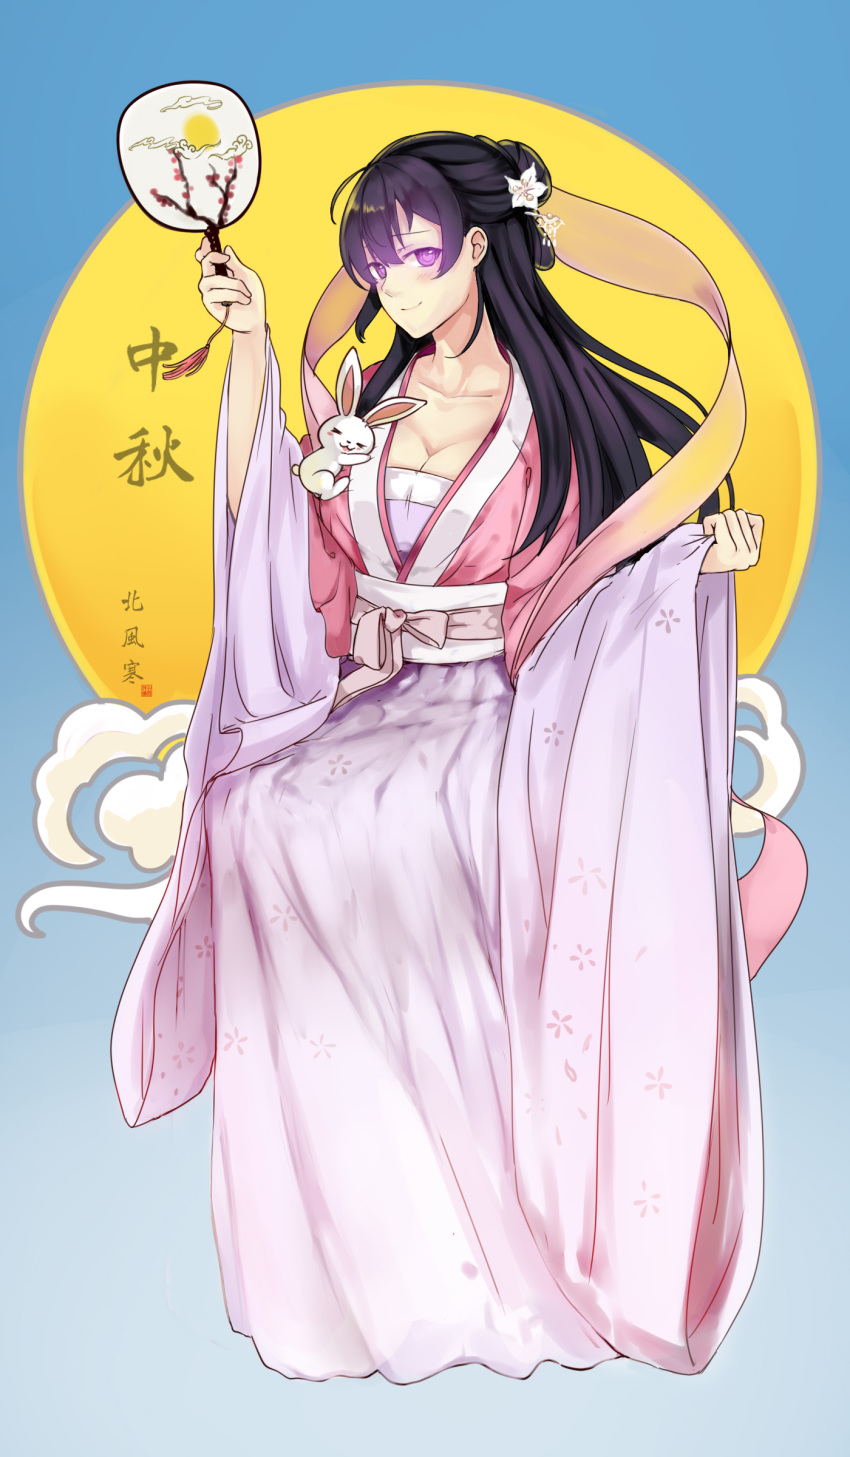 1girl absurdres beifeng_han black_hair blush breasts chinese_clothes cleavage closed_mouth collarbone fan flower full_body glowing glowing_eyes hair_flower hair_ornament hanfu highres large_breasts long_hair long_sleeves looking_at_viewer mid-autumn_festival miyaura_sanshio original paper_fan pink_eyes rabbit sash smile solo uchiwa wide_sleeves